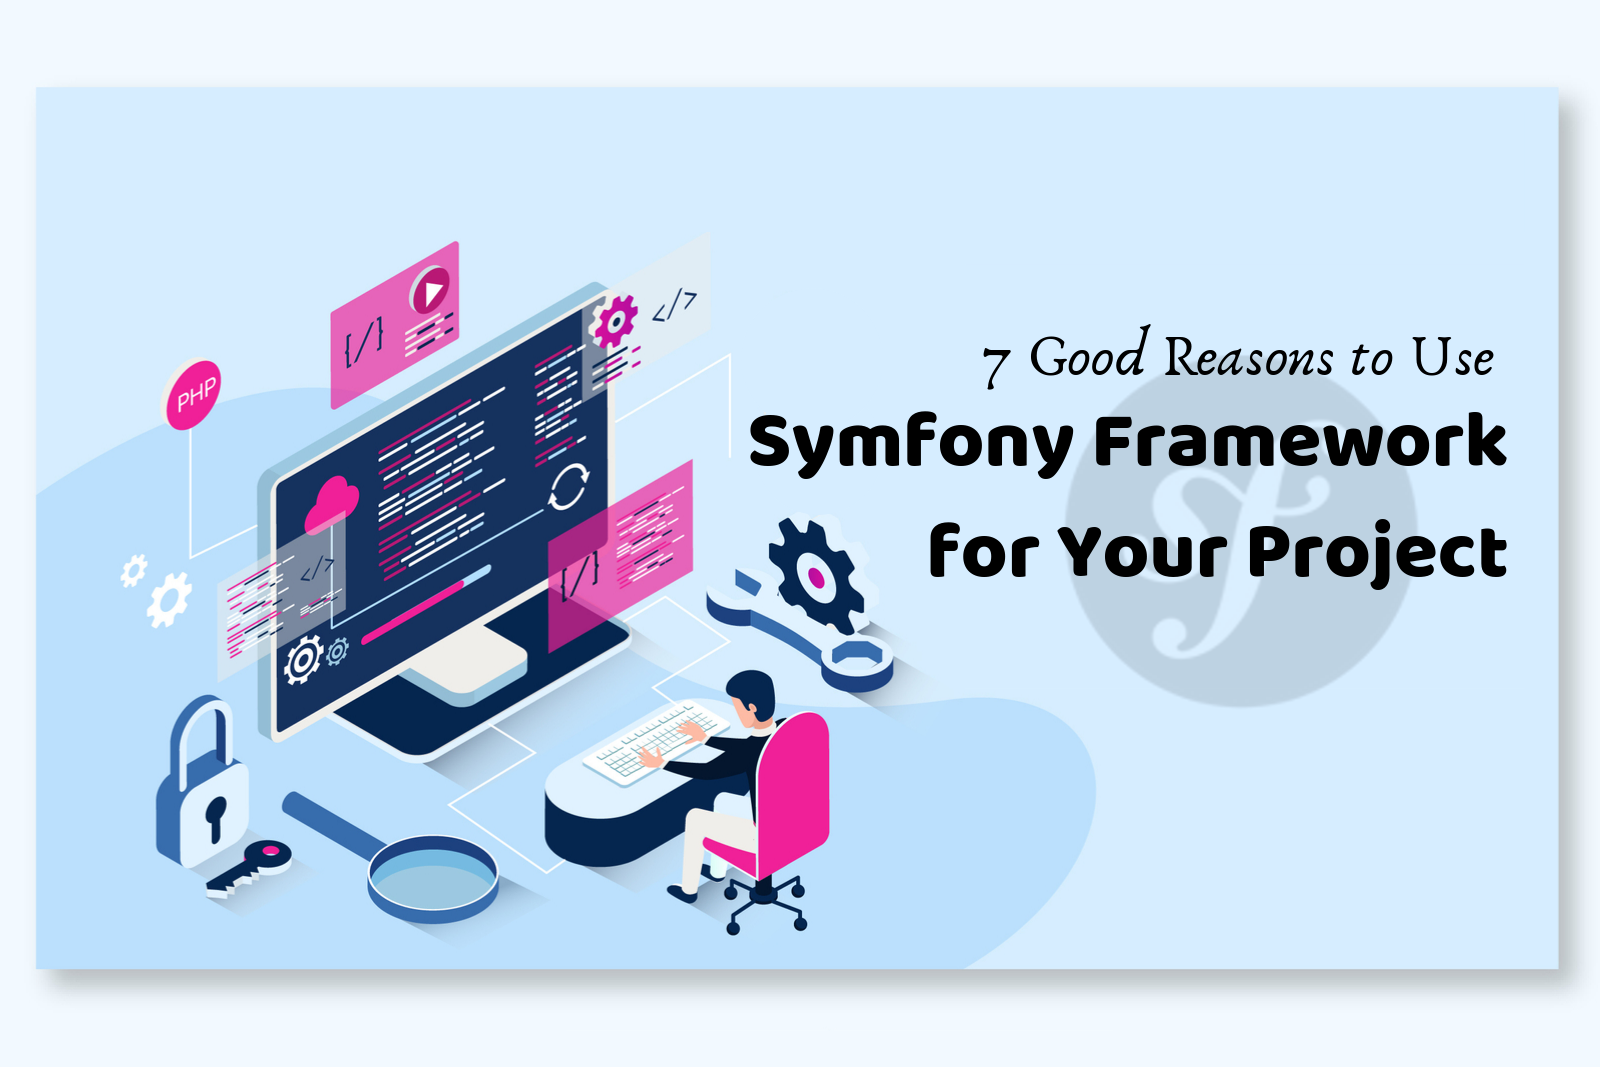 7 Good Reasons to Use Symfony Framework for Your Project